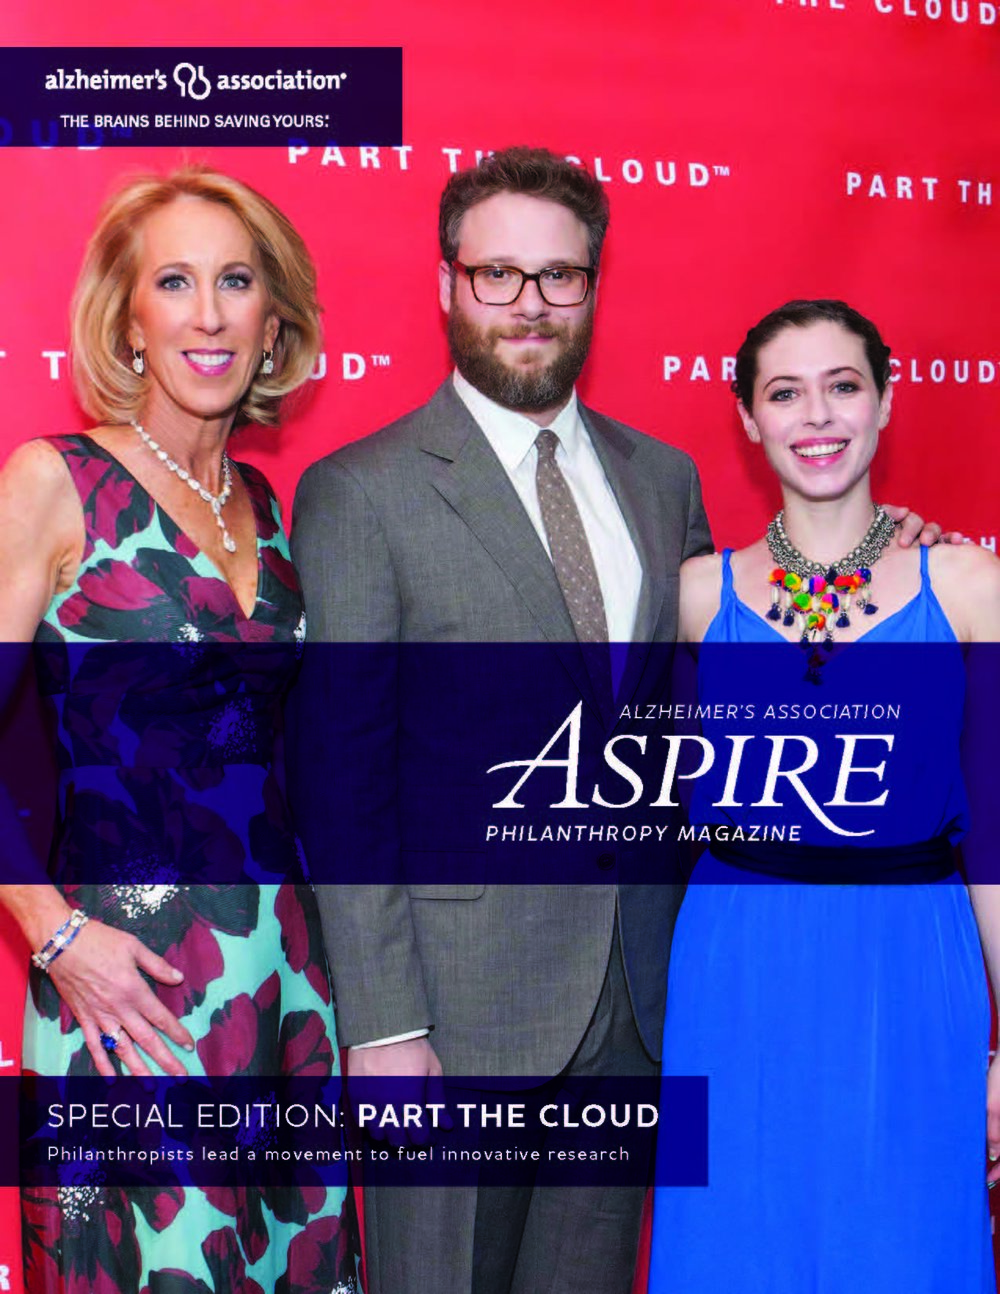 Part the Cloud Aspire Magazine